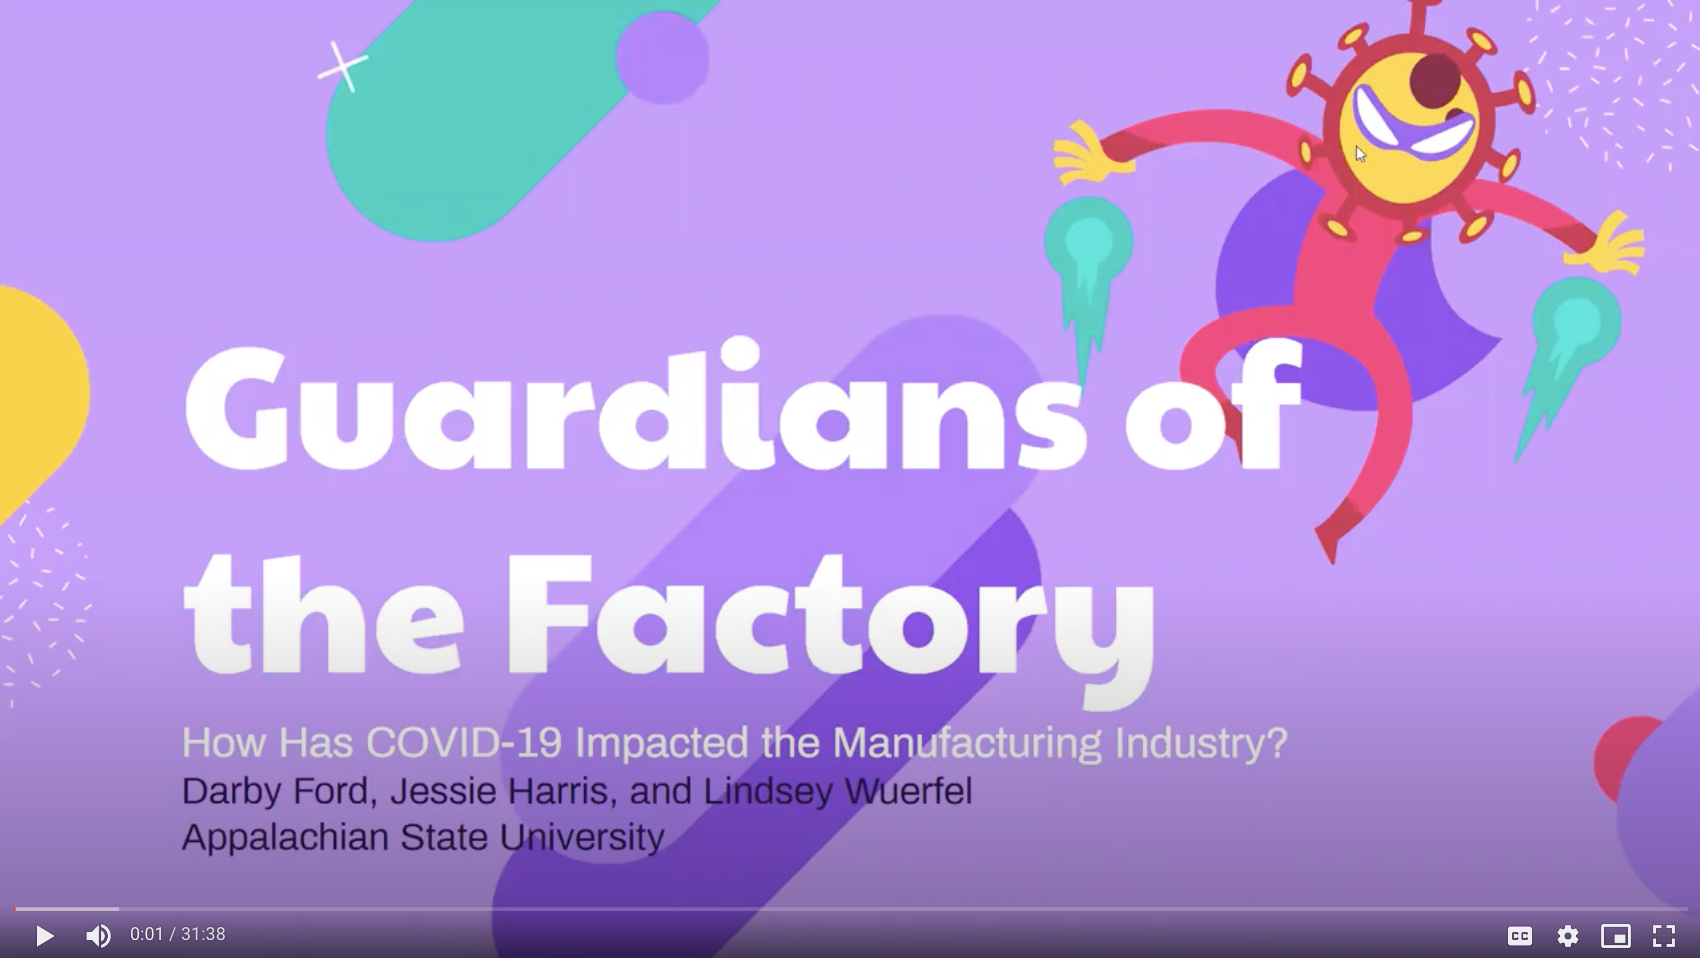 Guardians of the Factory: How Has COVID-19 Impacted the Manufacturing Industry?